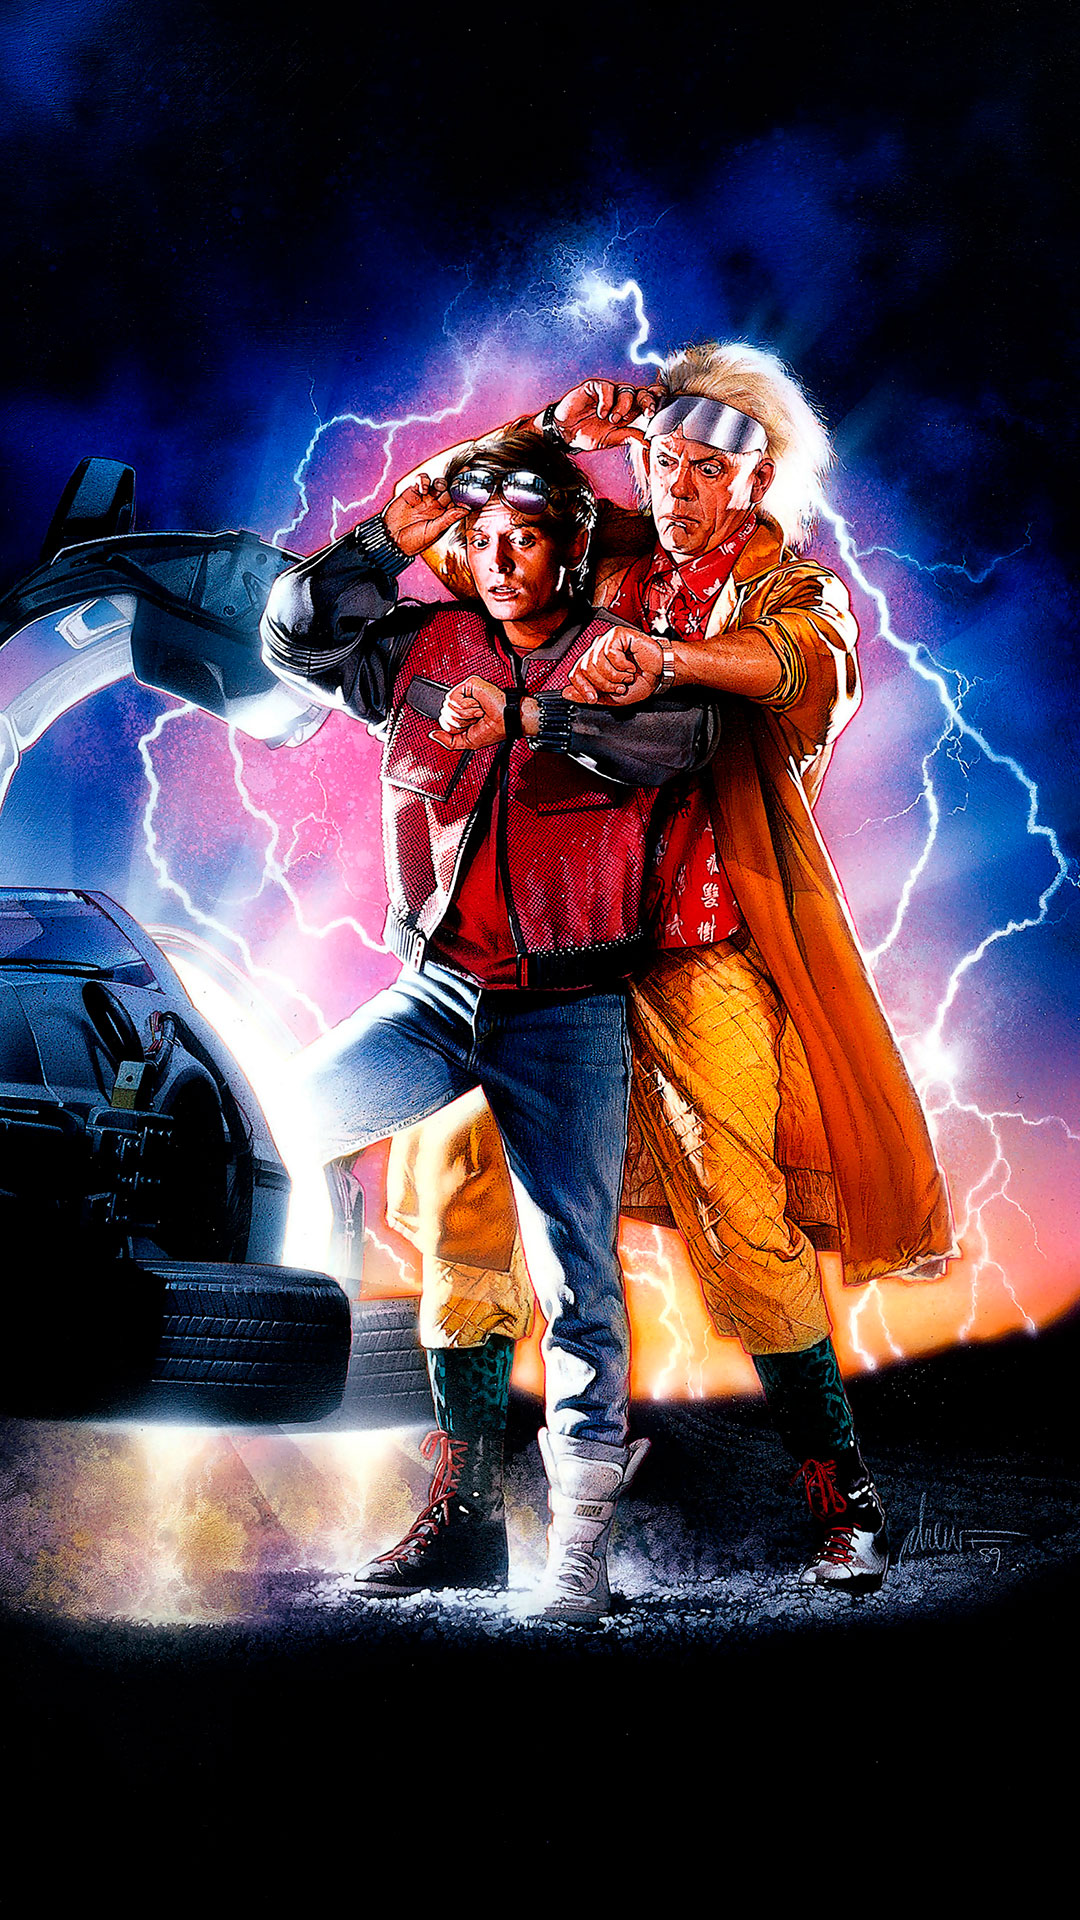 iPhone wallpaper back to the future doc marty Back to the Future